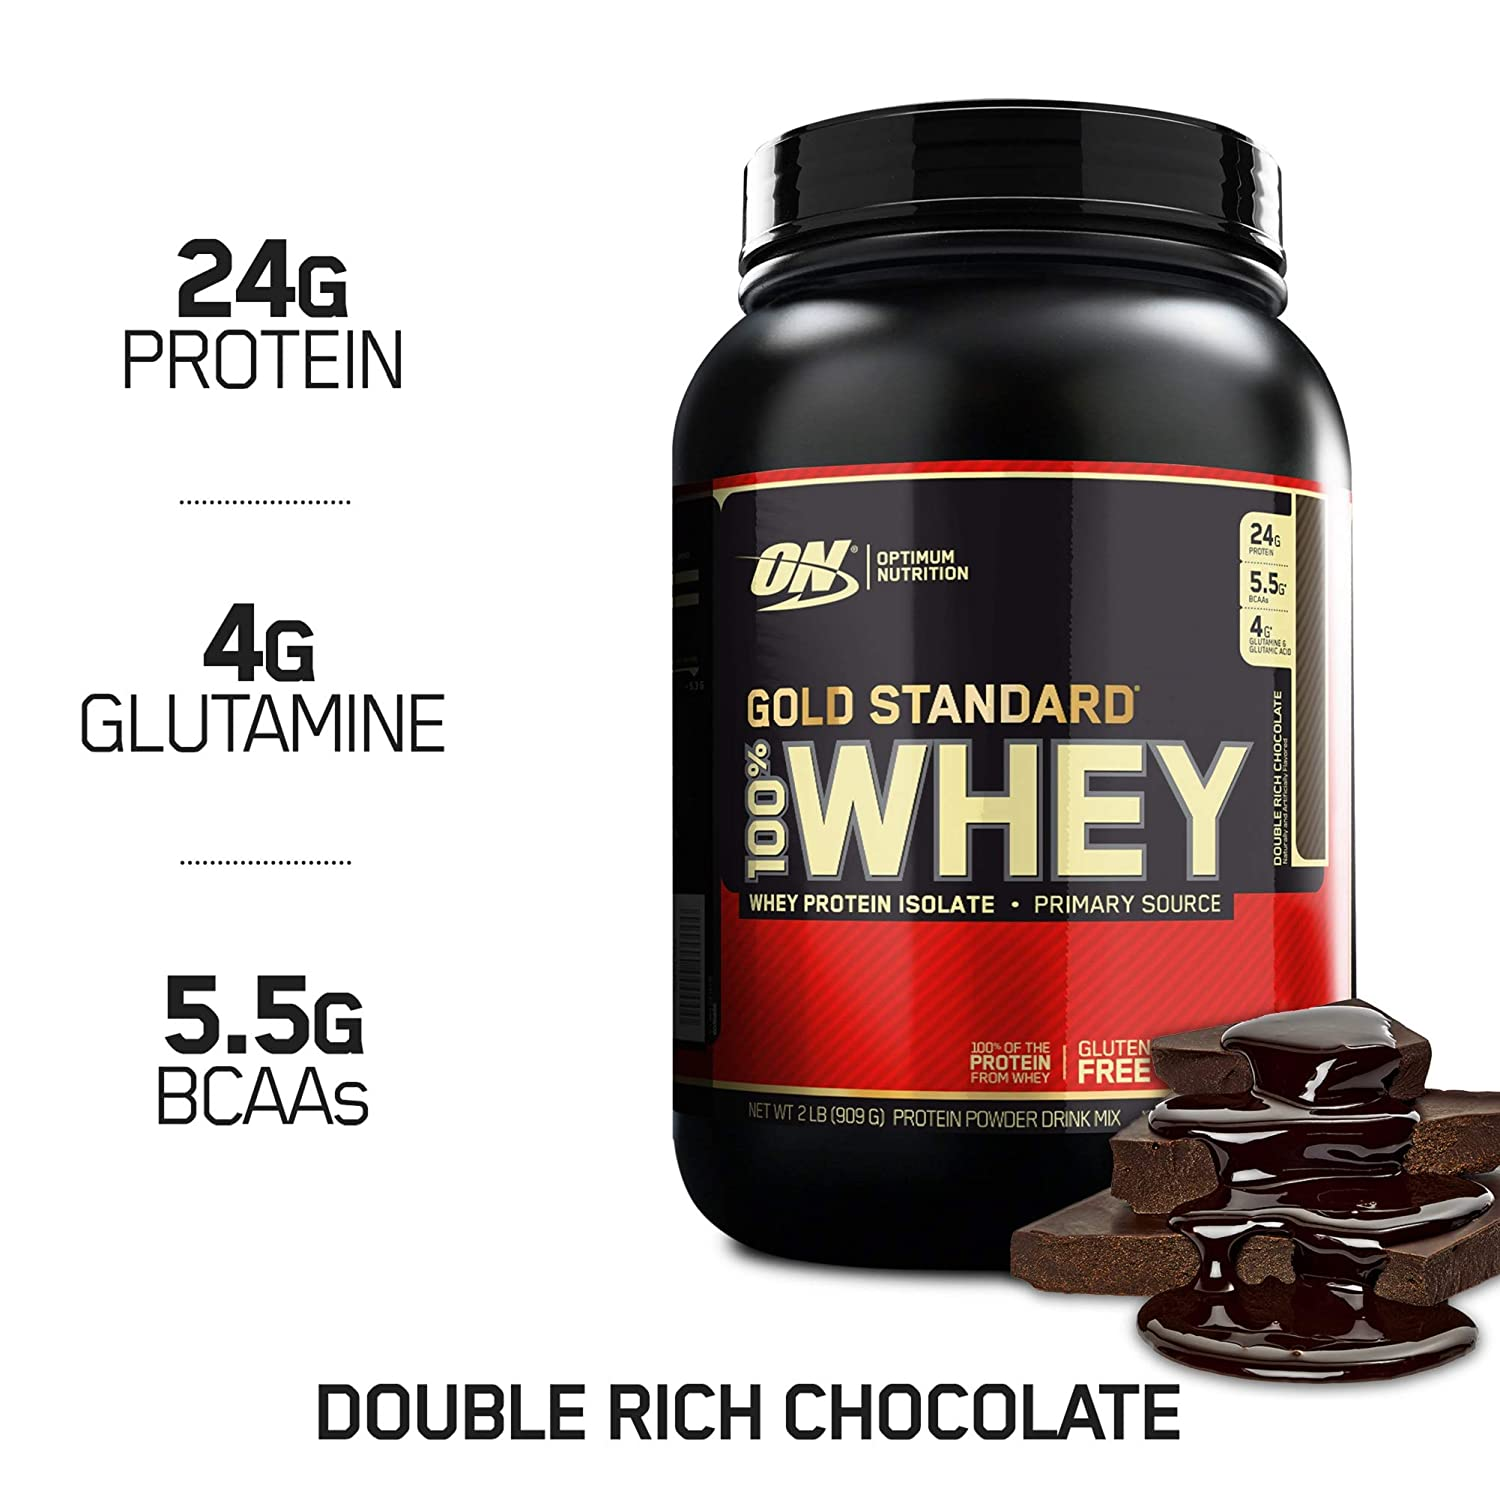 Top 10 Whey Protein 2020.Optimum Nutrition Gold Standard Whey Protein Powder With Glutamine And Amino Acids Protein Shake Double Rich Chocolate 29 Servings 908 G